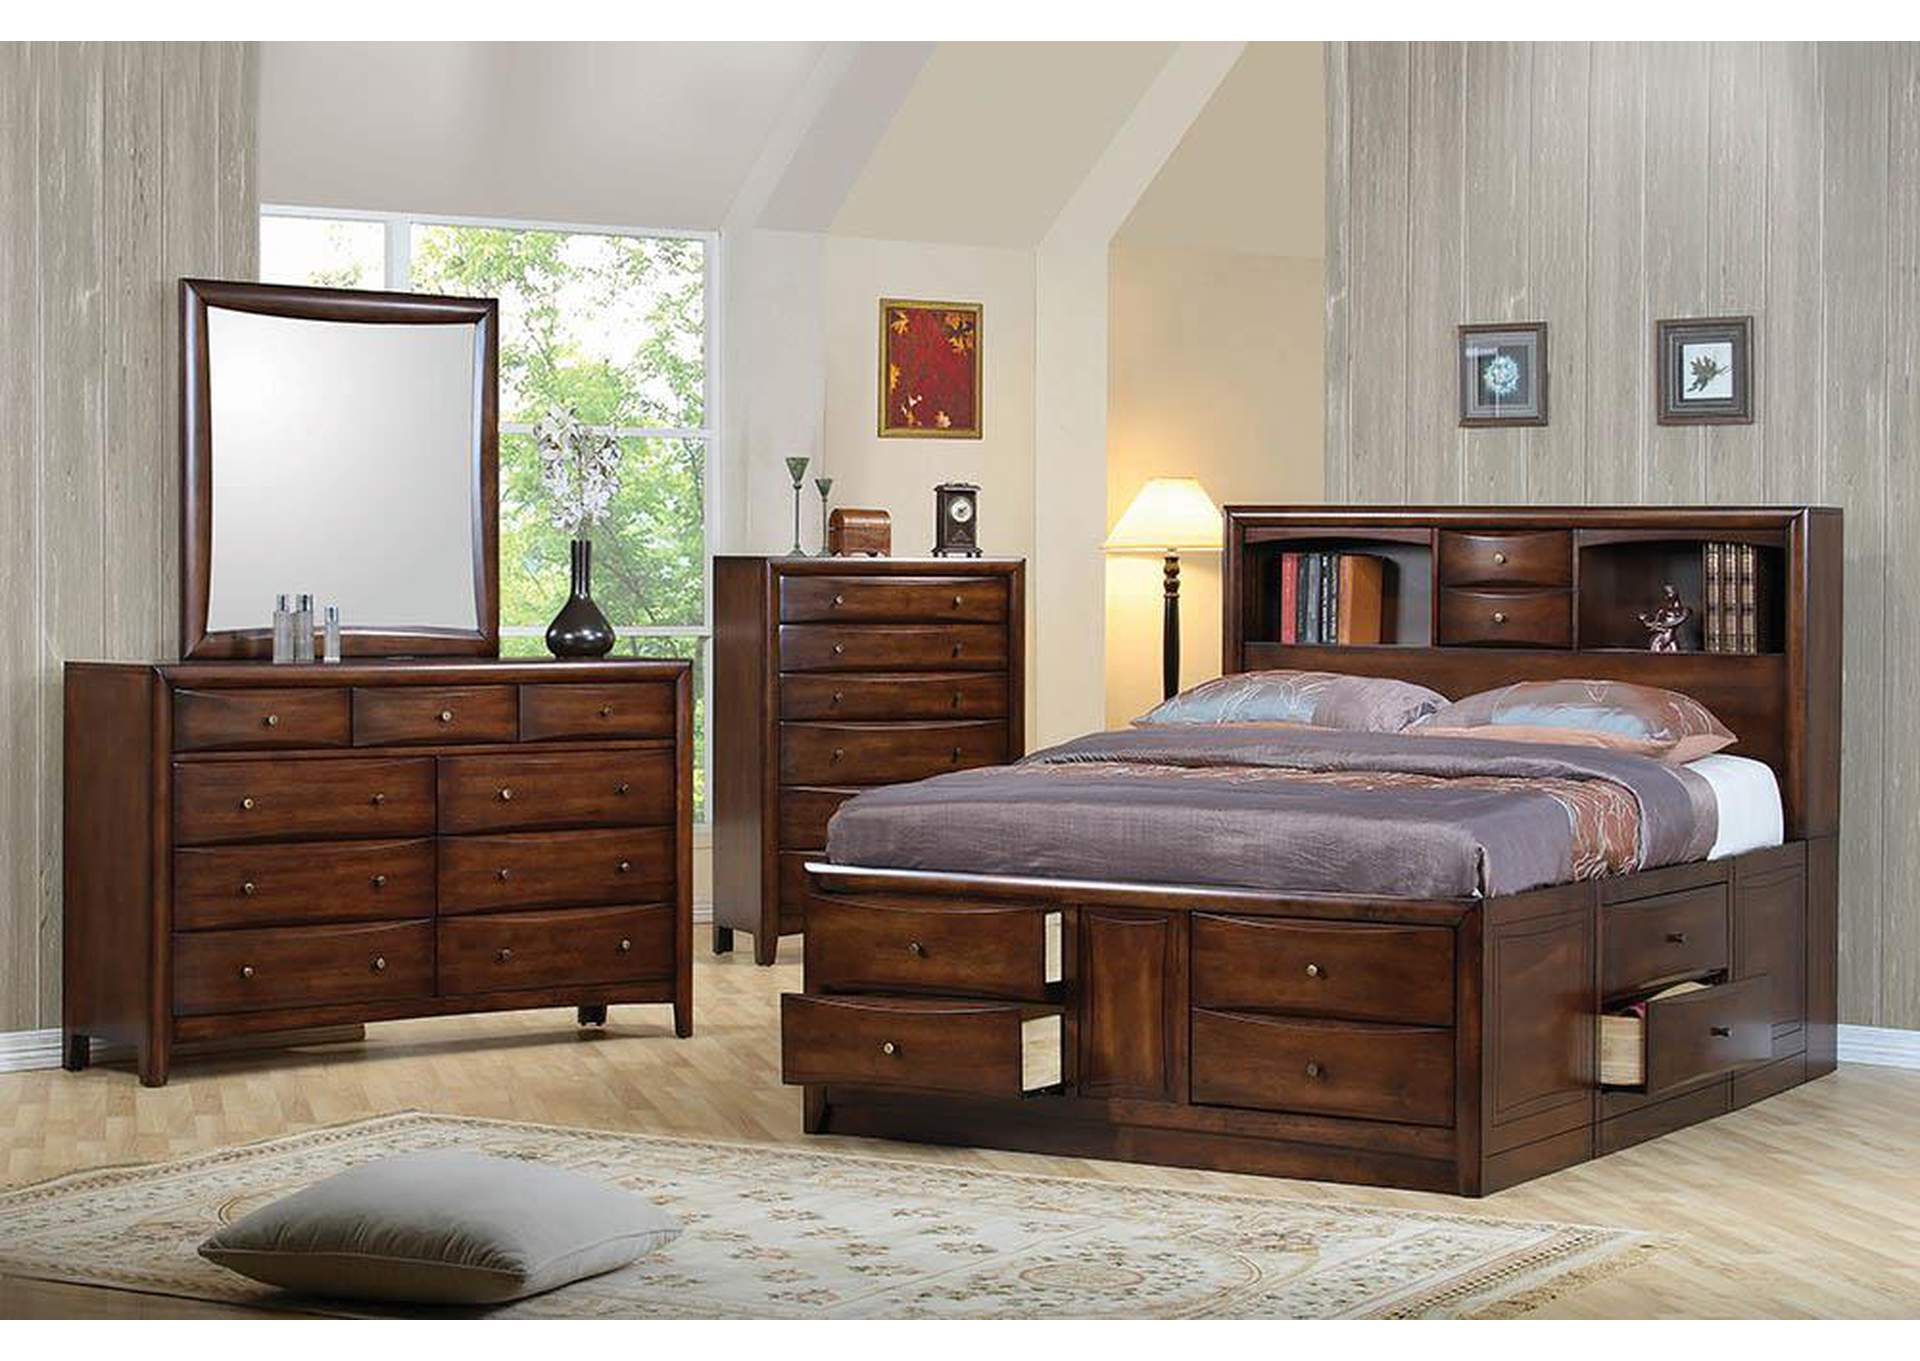 Hillary Walnut Queen Bed,Coaster Furniture